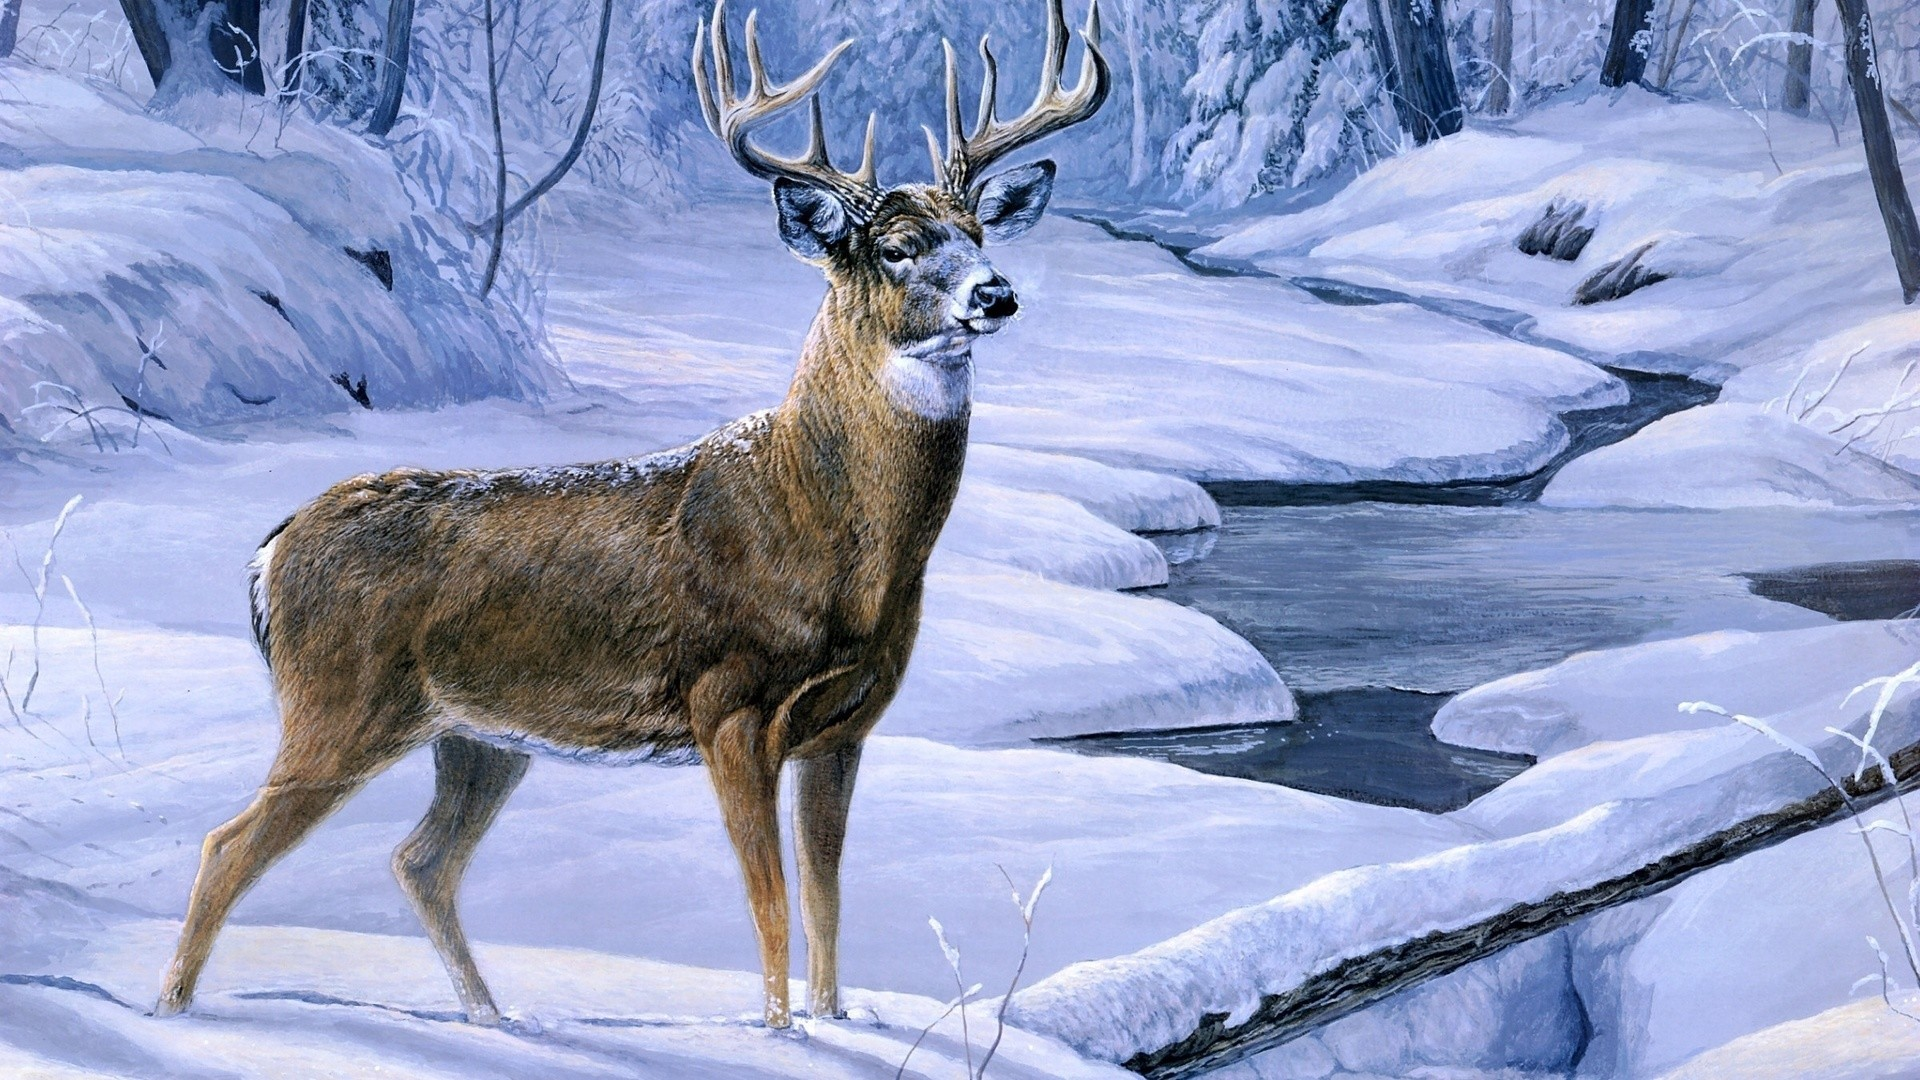 Deer Wallpaper Collection For Free Download | HD Wallpapers | Pinterest | Deer  wallpaper and Wallpaper